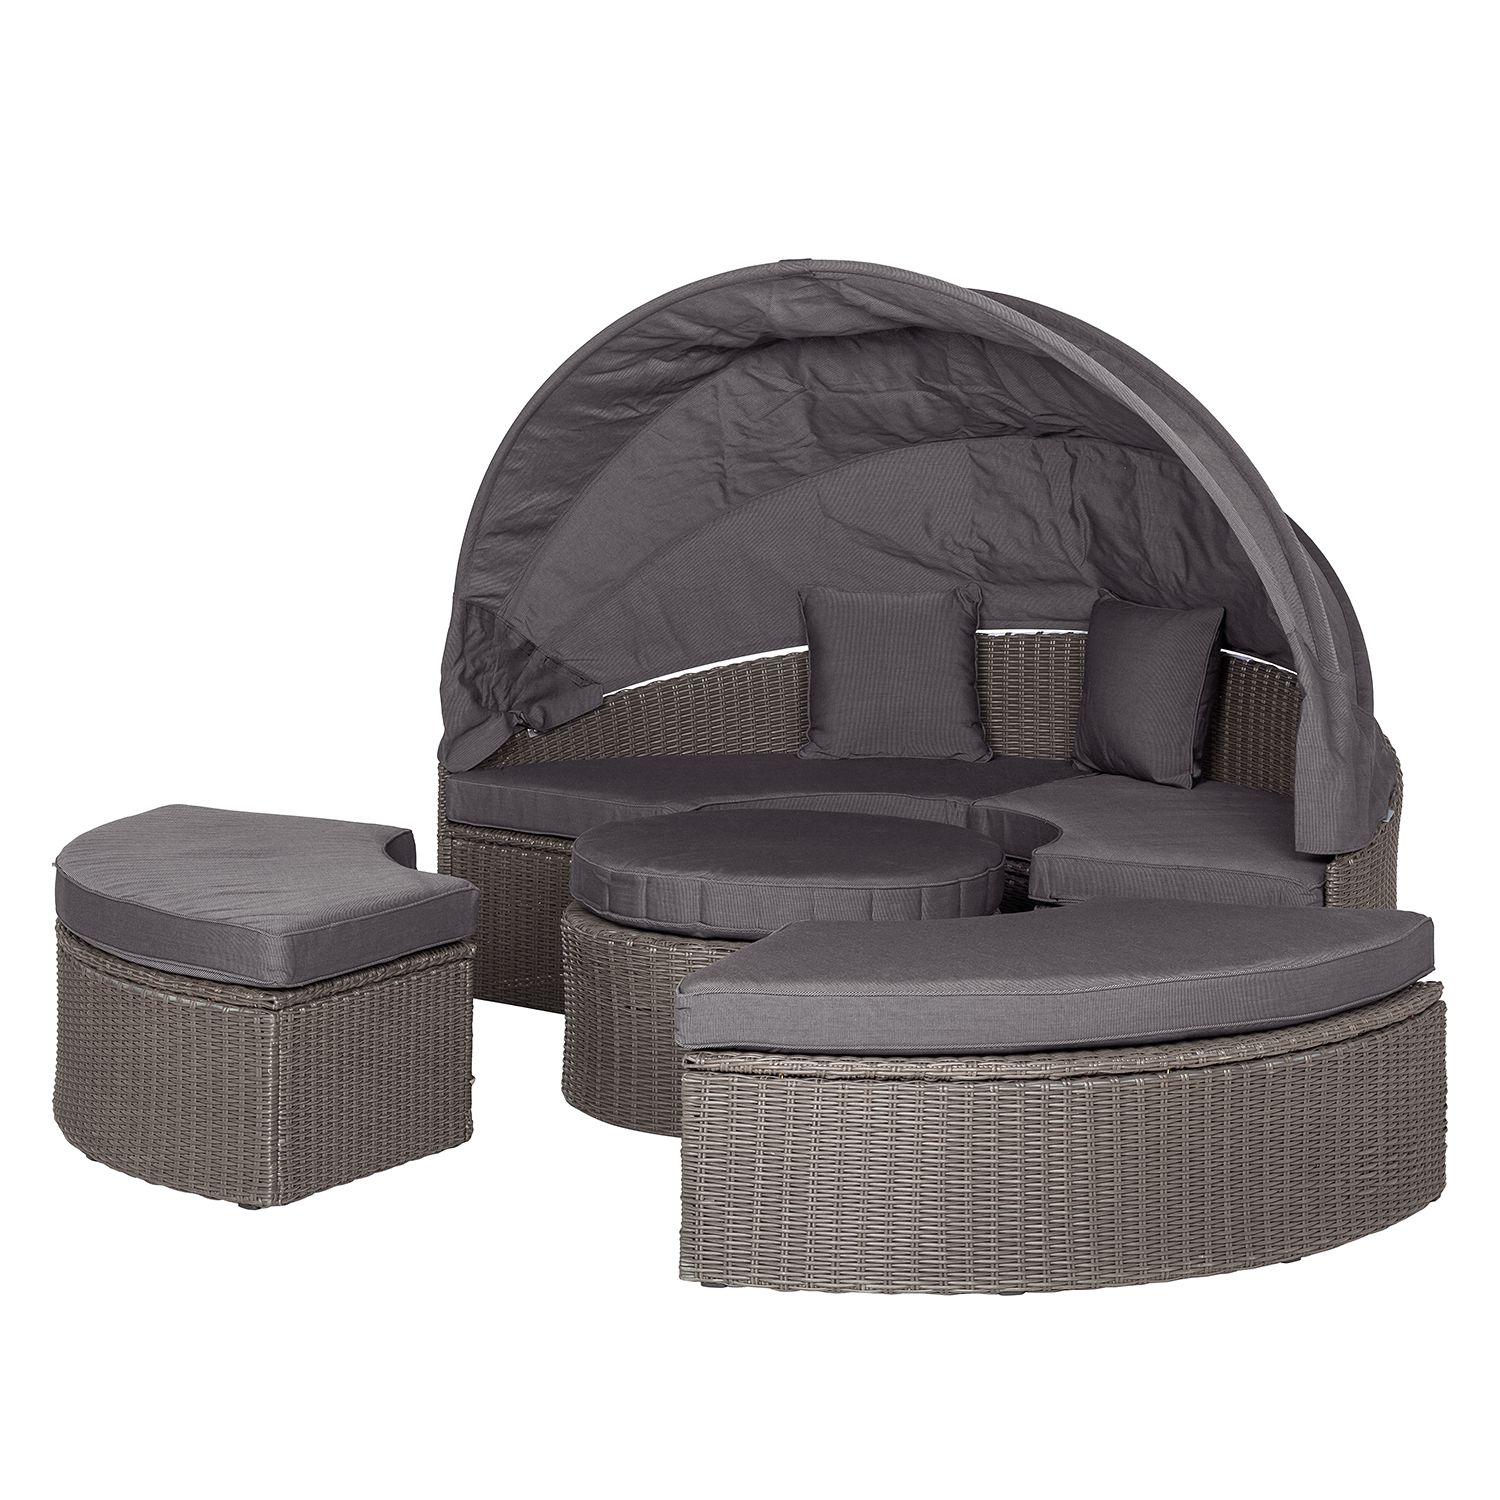 Gartenmuscheln Sonneninsel Rattan Grau Exclusive Poly Rattan Sonneninsel